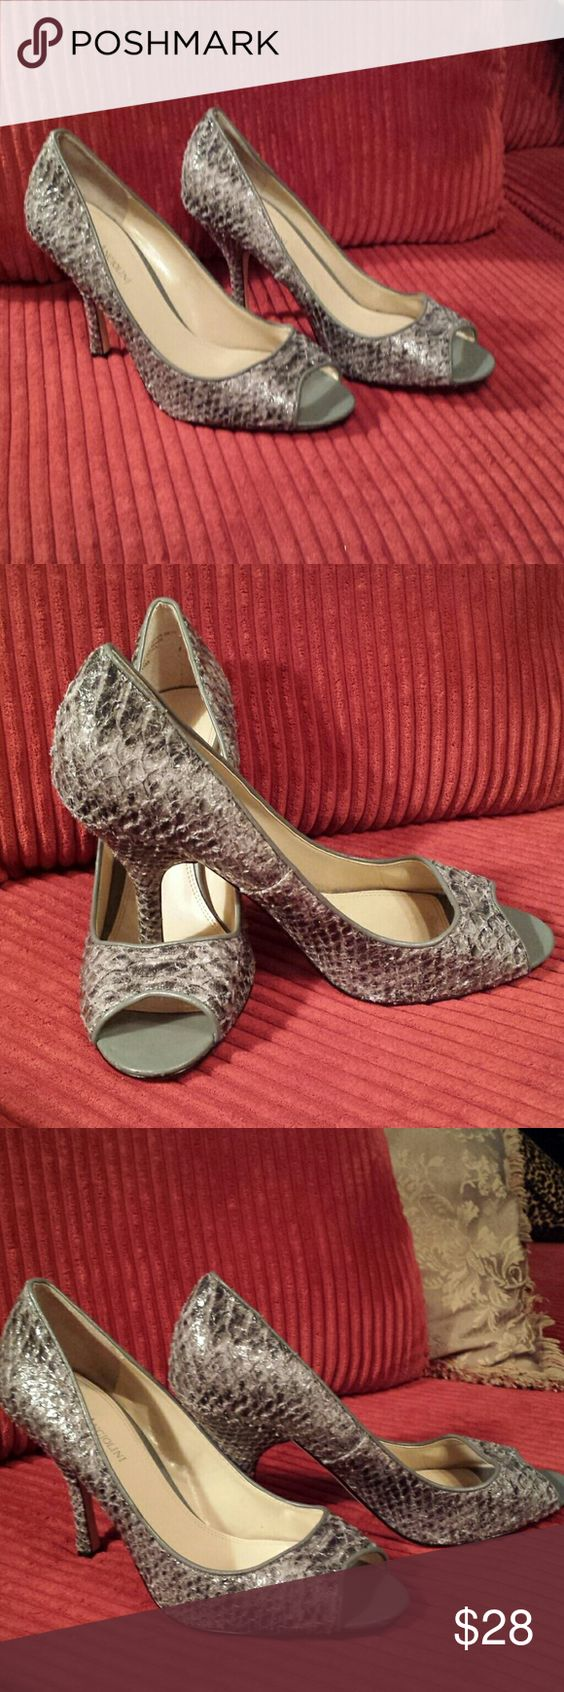 🌹Stunning Enzo Angiolini Stiletto Pumps🌹 Gray Slit  Snake Pattern  Enzo Angiolini  heels.  Size 10.  Minimal wear gently worn condition shows no noticeable wear.   Very elegant shoe. Enzo Angiolini Shoes Heels